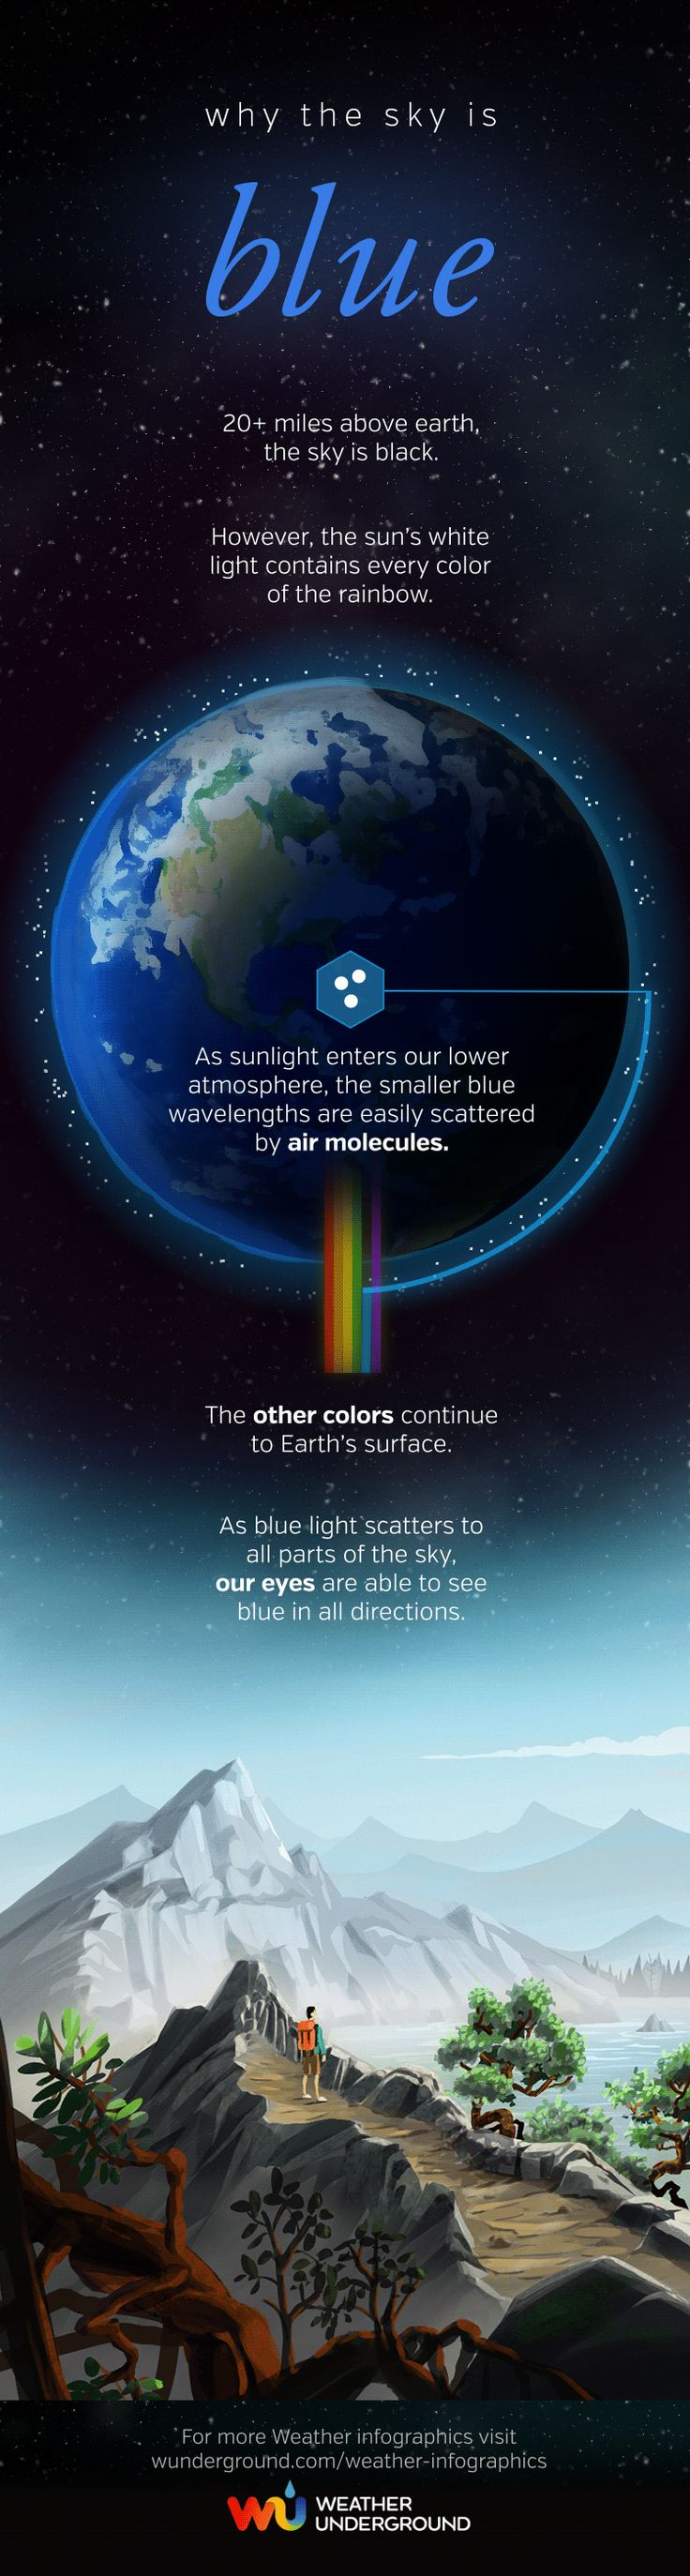 The question everyone from toddlers to Ph.D. candidates have asked: Why the sky is blue?⎜Infographic by Weather Underground⎜For more infographics, visit wunderground.com